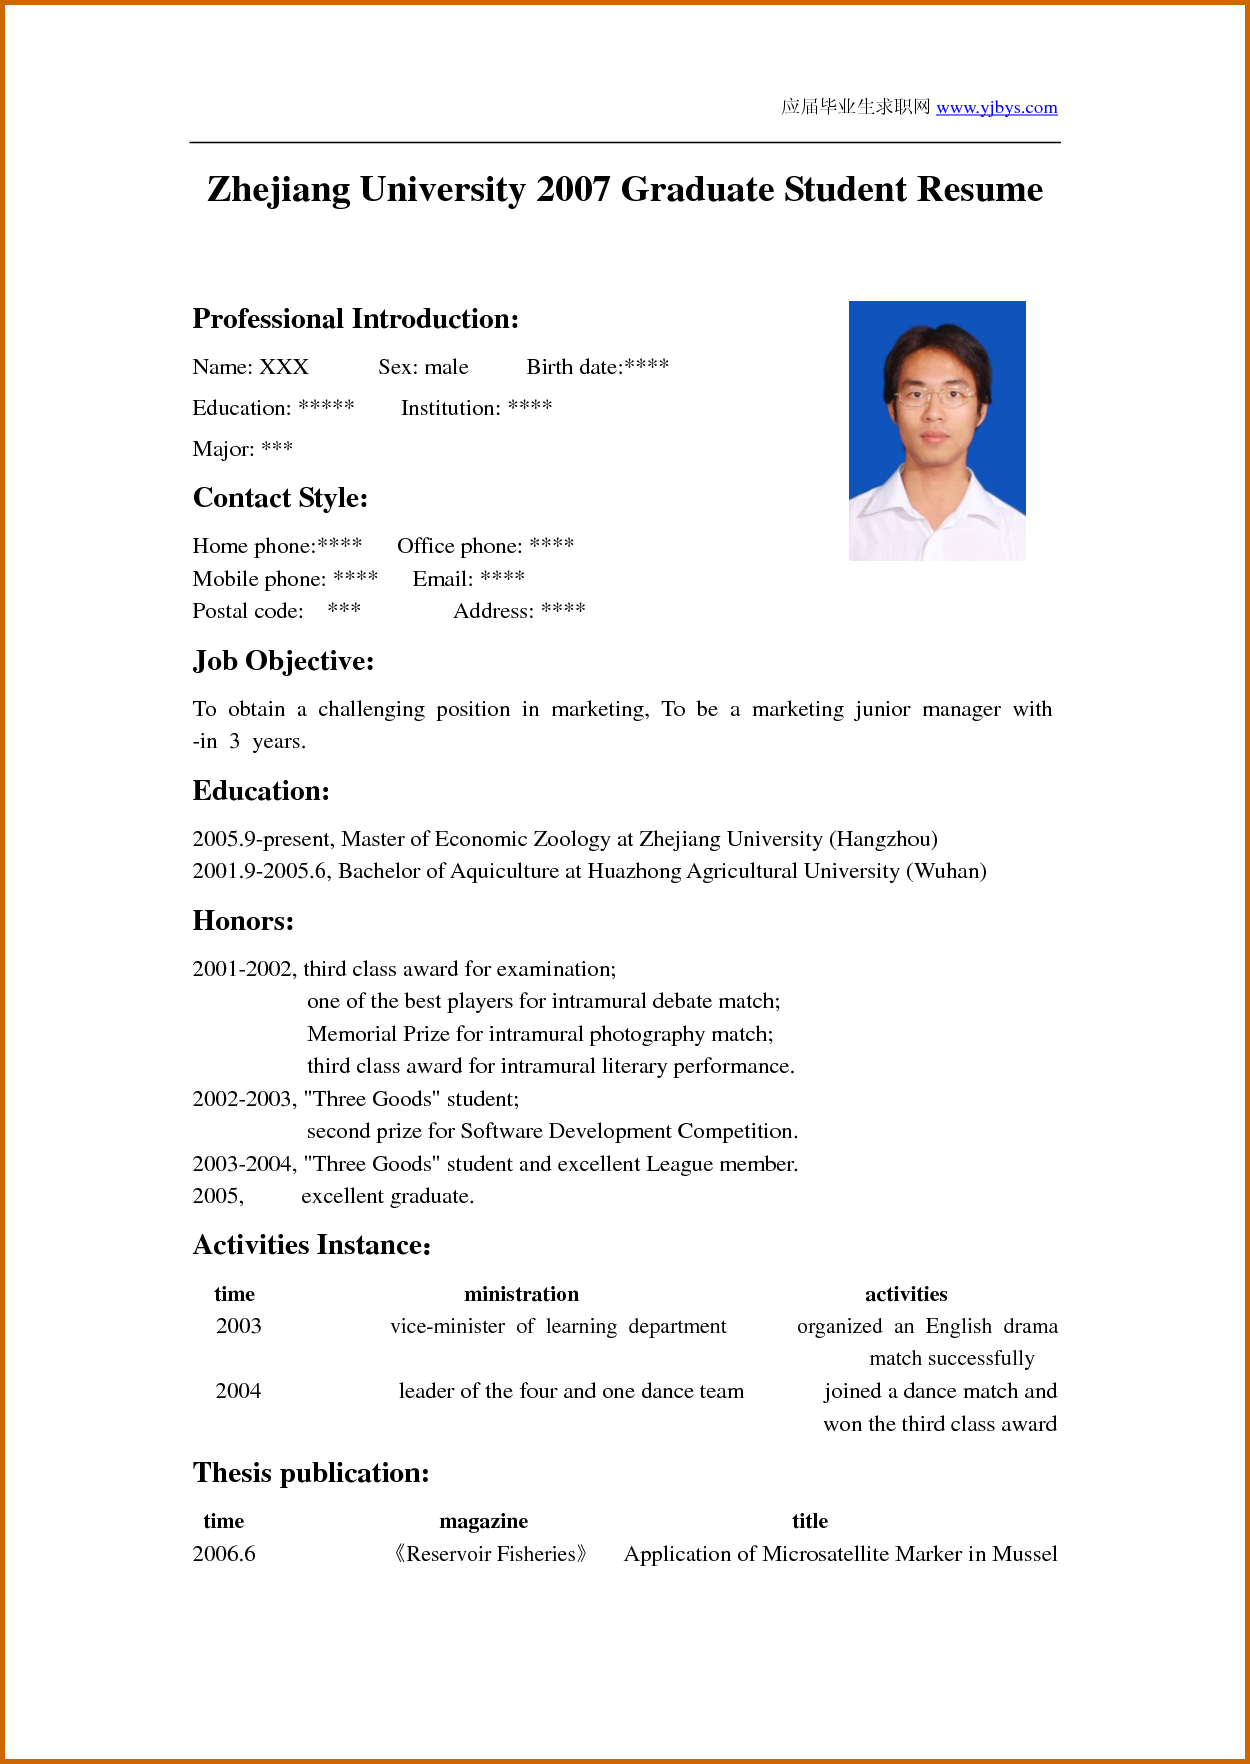 How To Write A Cv For Students Yahoo Image Search Results Student Resume Student Resume Template Resume Examples